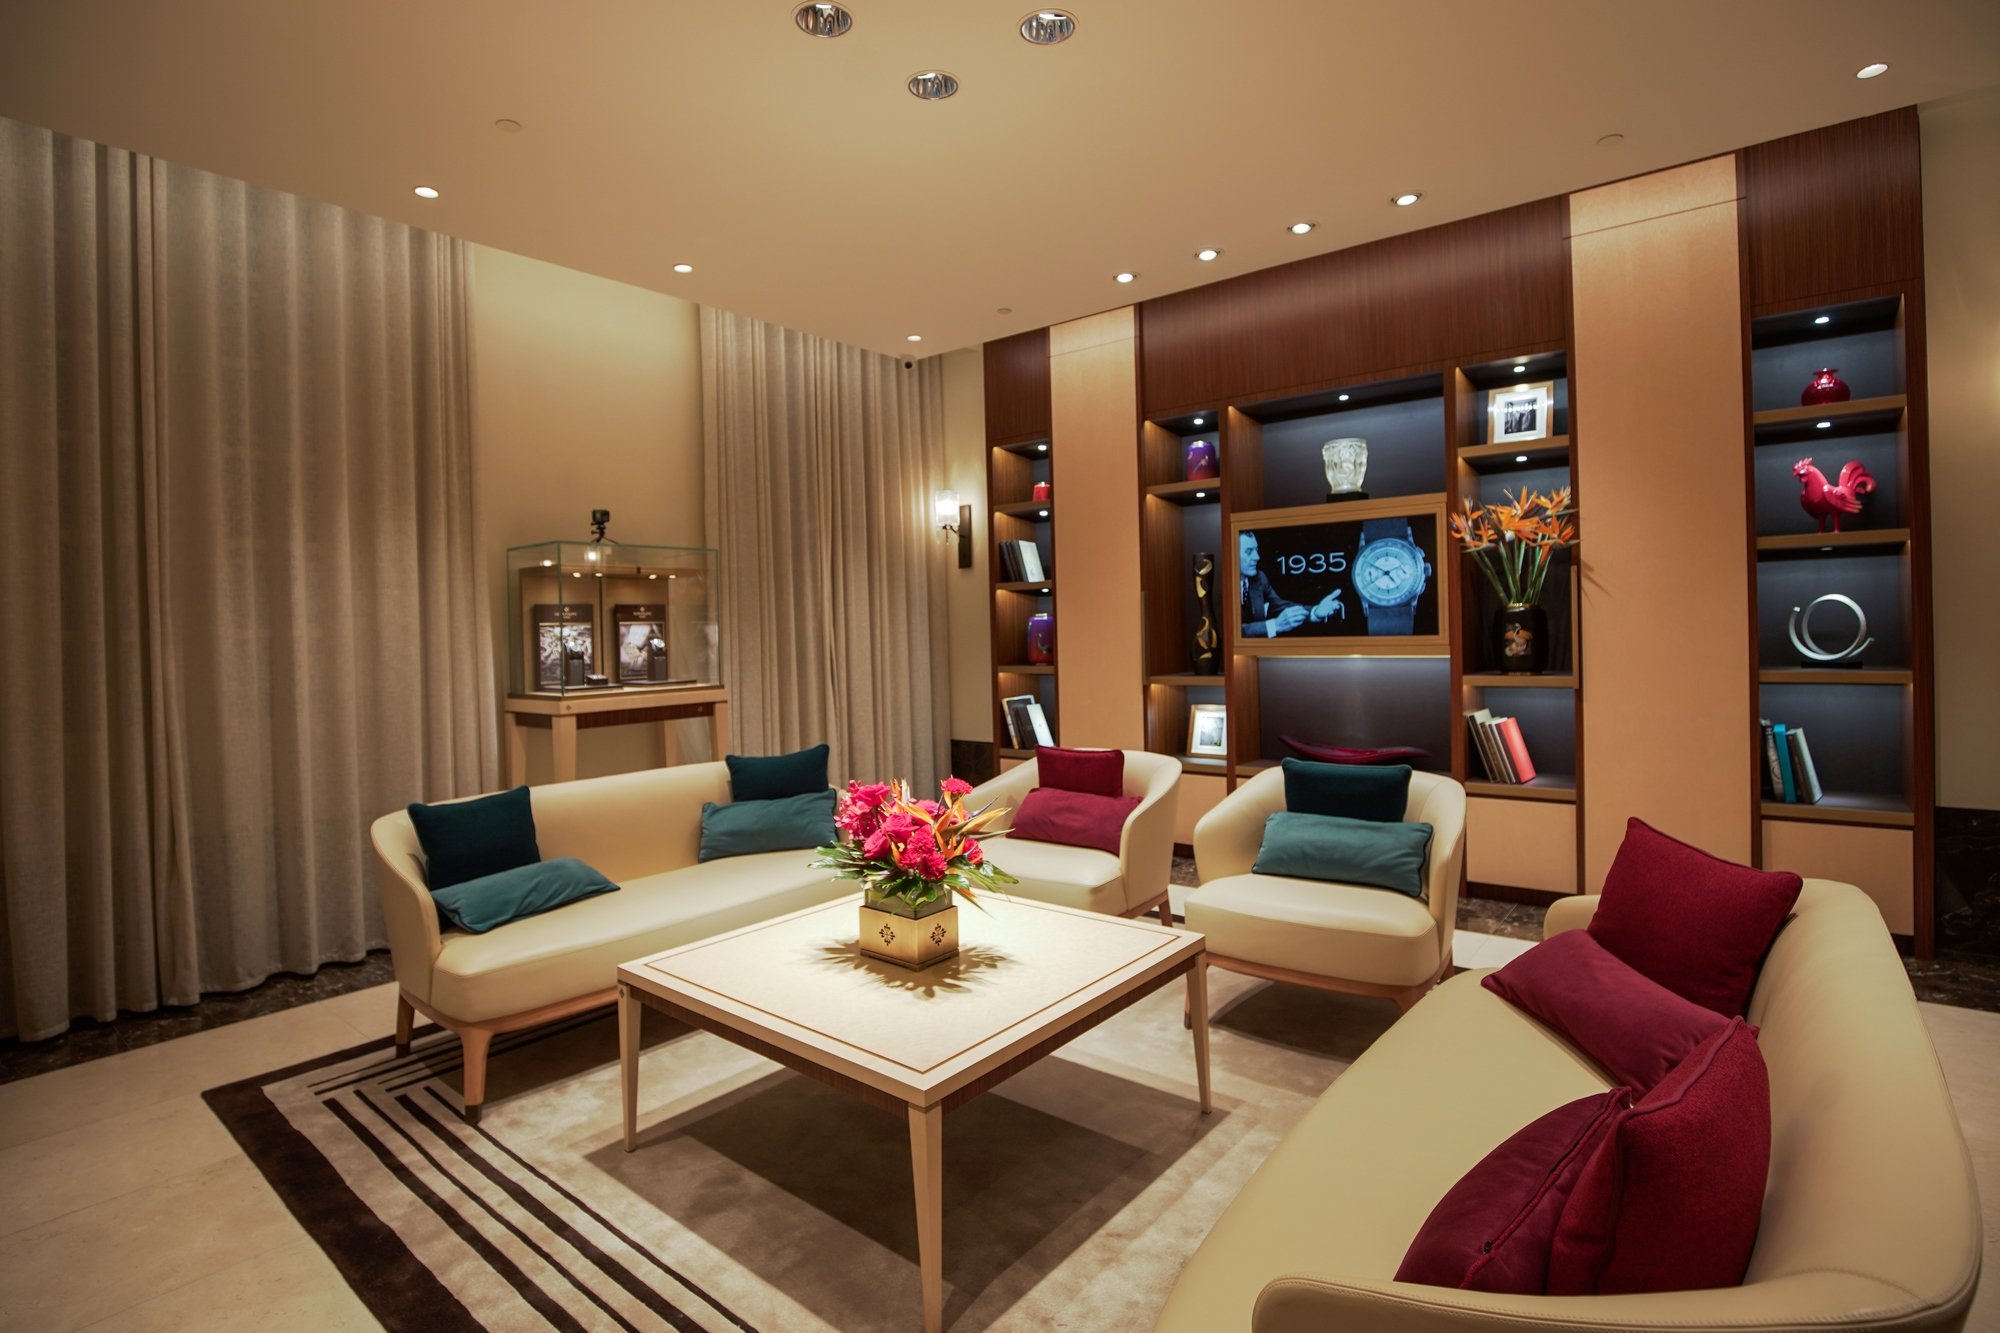 Tam Son opened the first Patek Philippe boutique in Vietnam